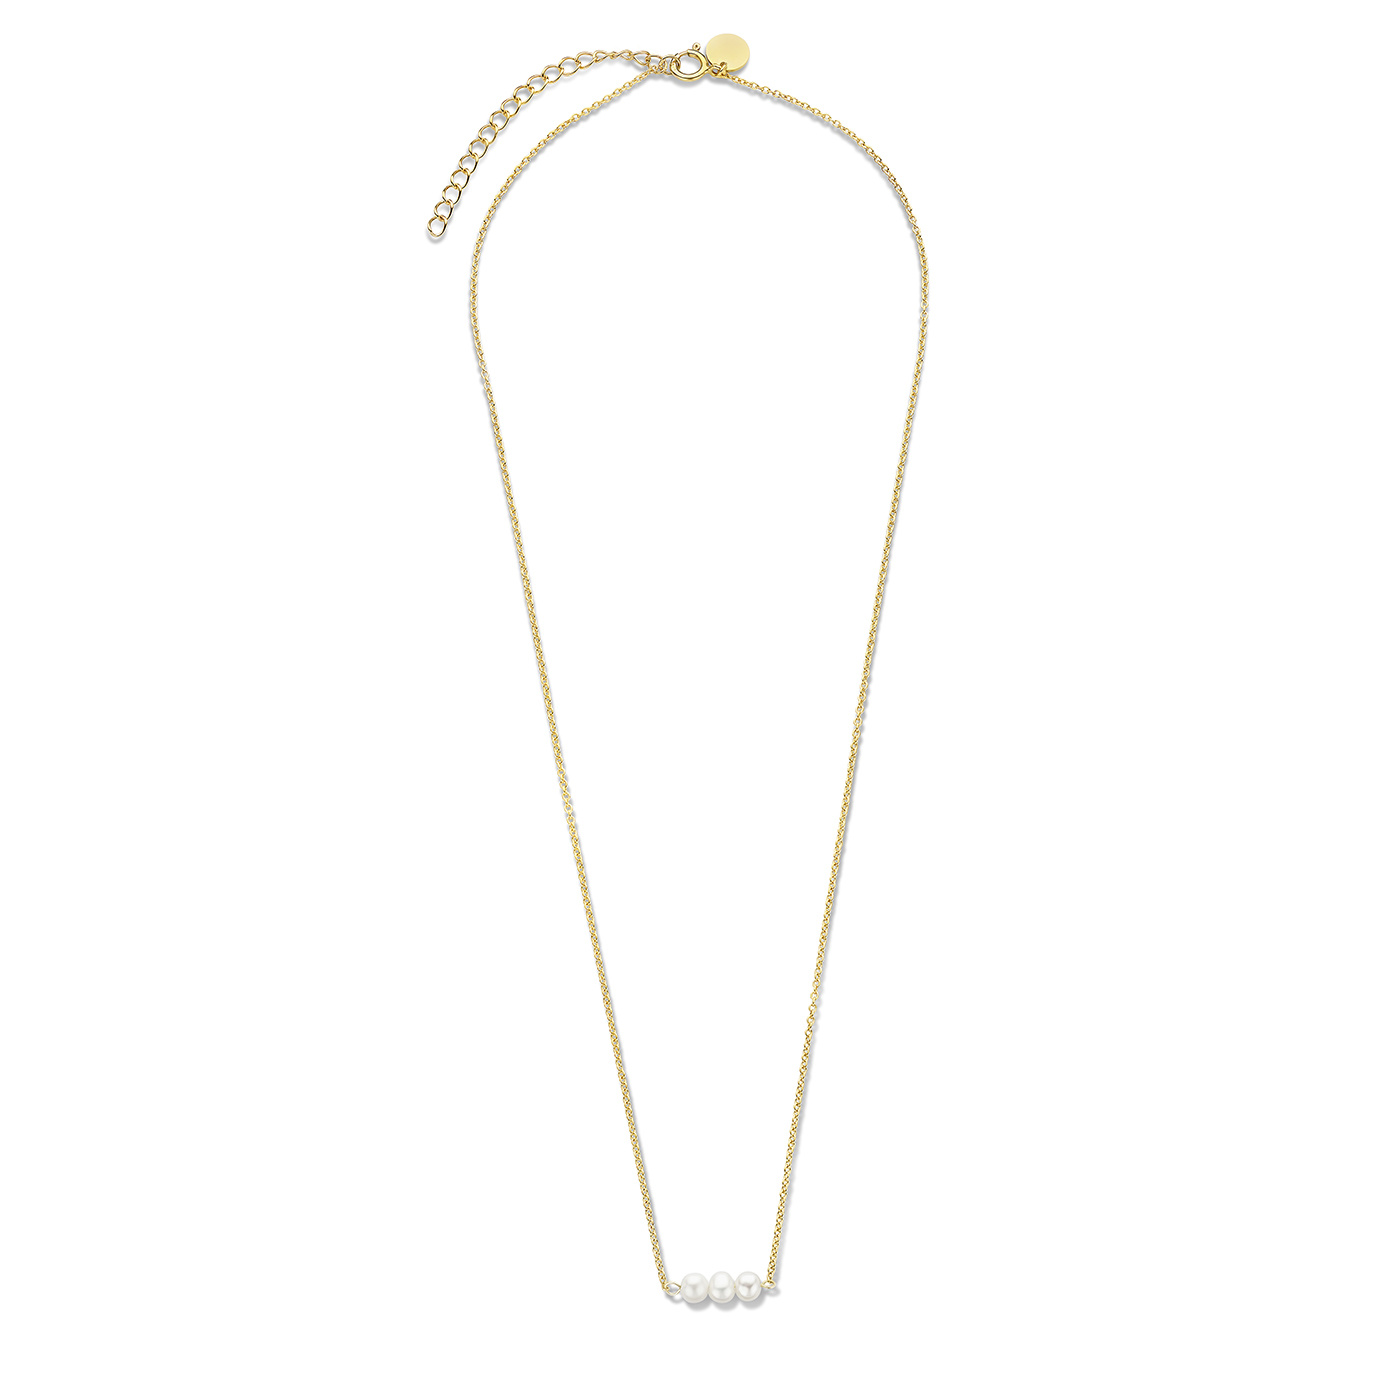 Violet Hamden Luminous Lake 925 sterling silver gold colored necklace with freshwater pearls